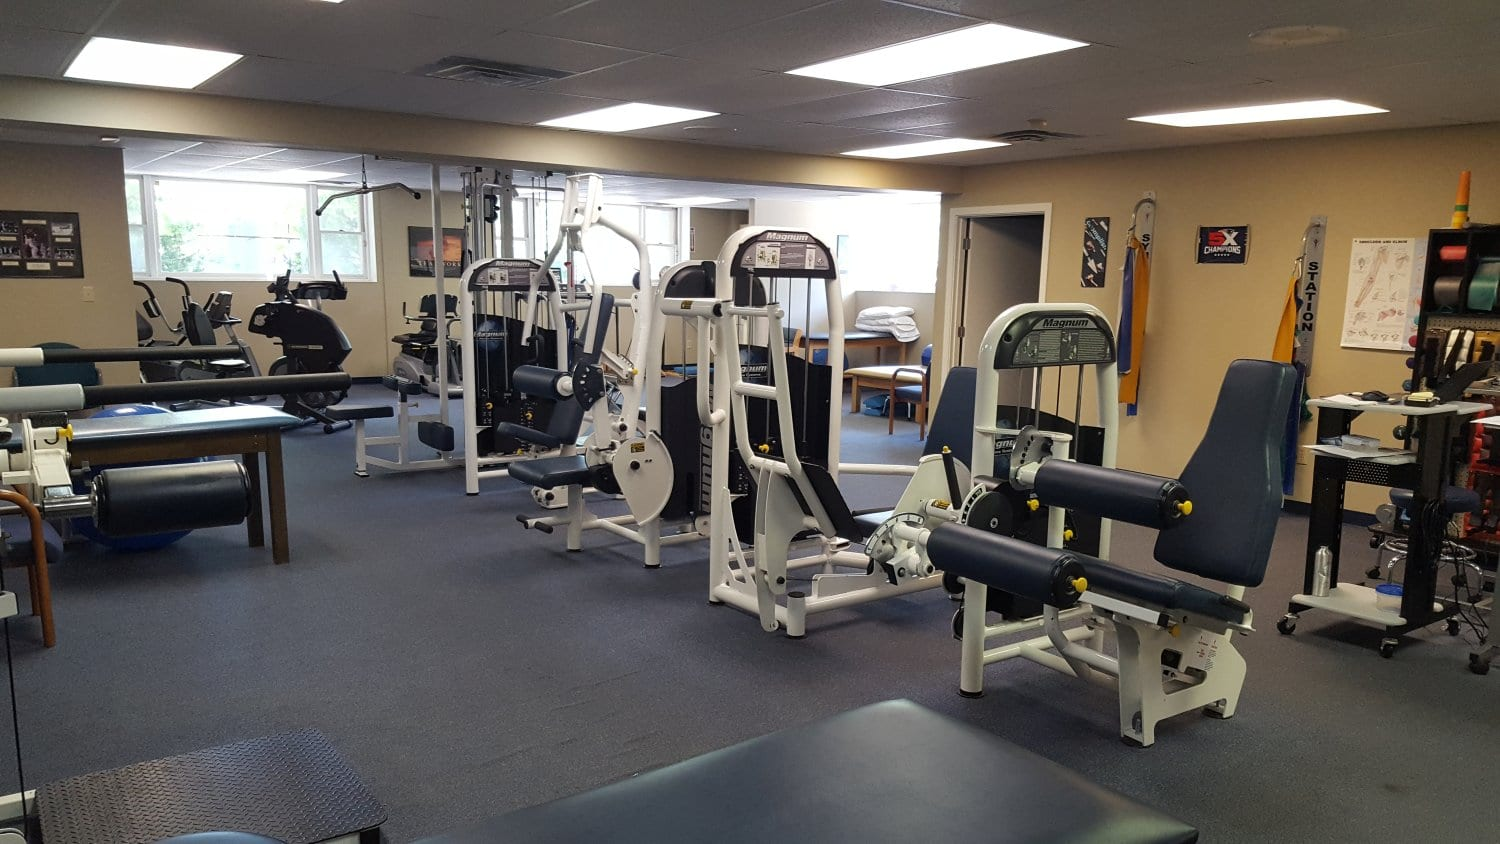 An image of the various equipment and machines used for physical therapy at our clinic in Marshfield, Massachusetts.